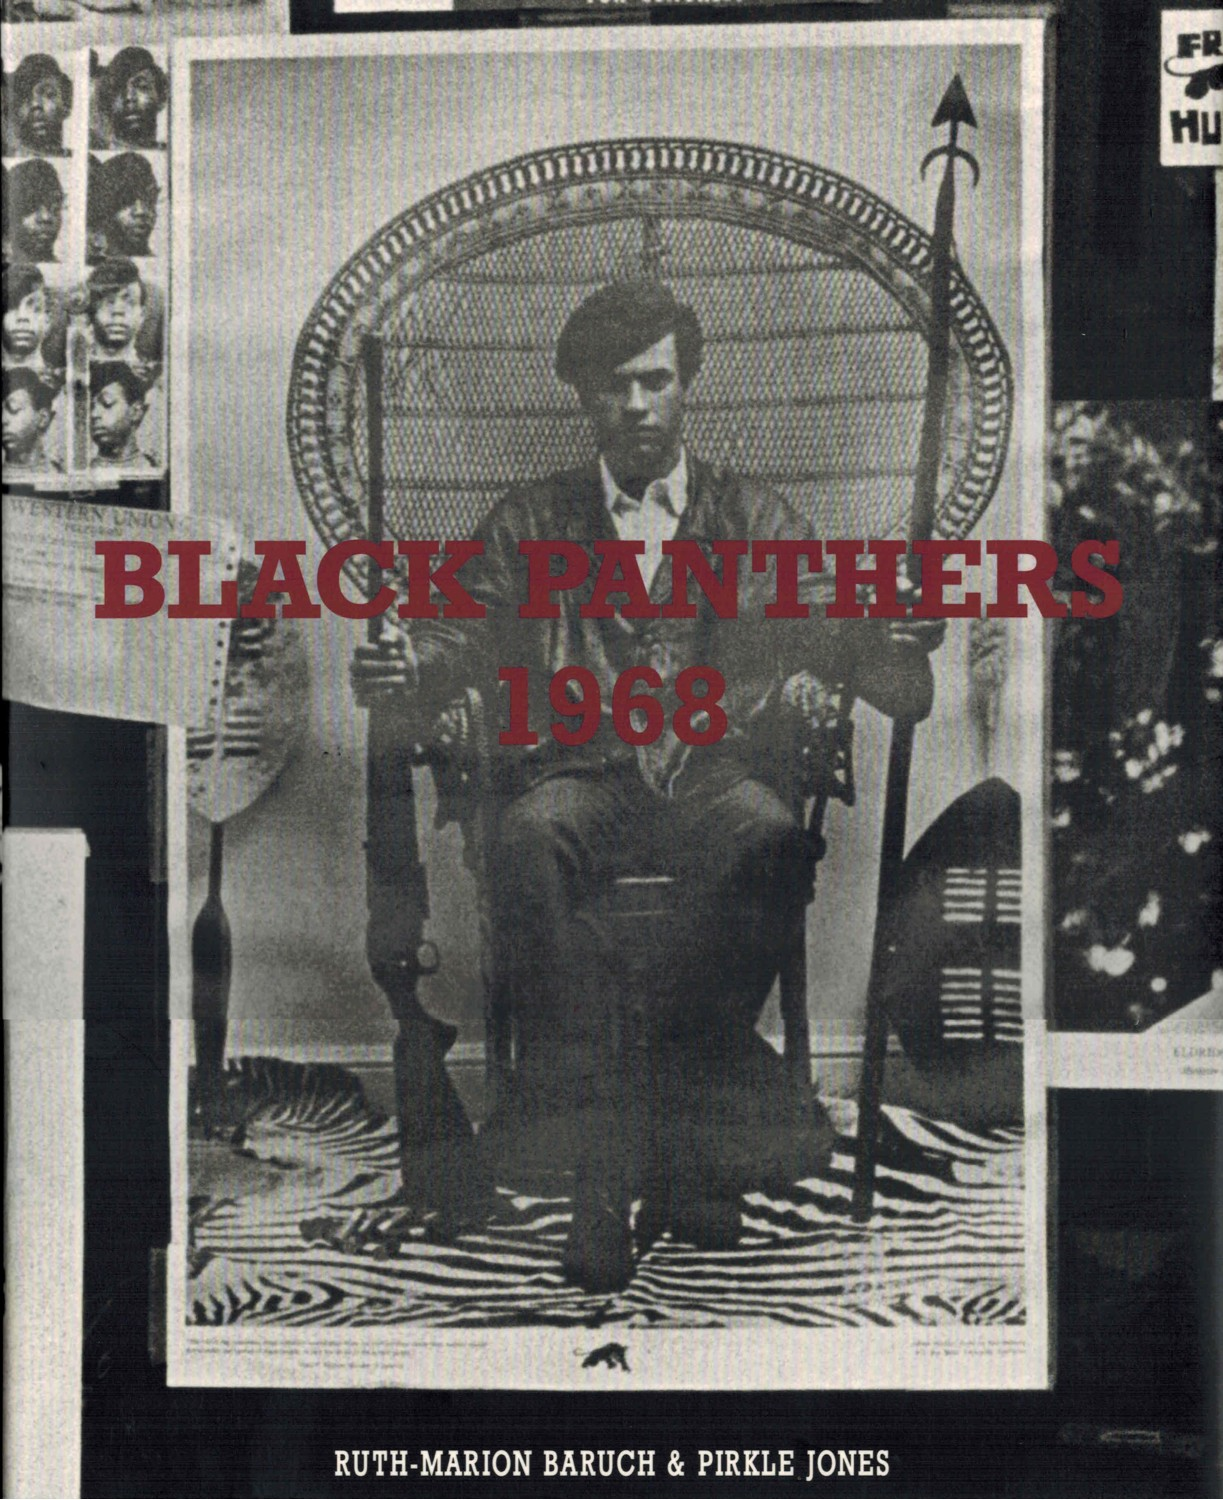 (JONES, PIRKLE) (BARUCH, RUTH-MARION) (BLACK PANTHERS, THE). JONES, PIRKLE & RUTH-MARION BARUCH. INTRODUCTION BY KATHLEEN CLEAVER - BLACK PANTHERS 1968 - DELUXE BOXED EDITION WITH A SIGNED PHOTOGRAPH